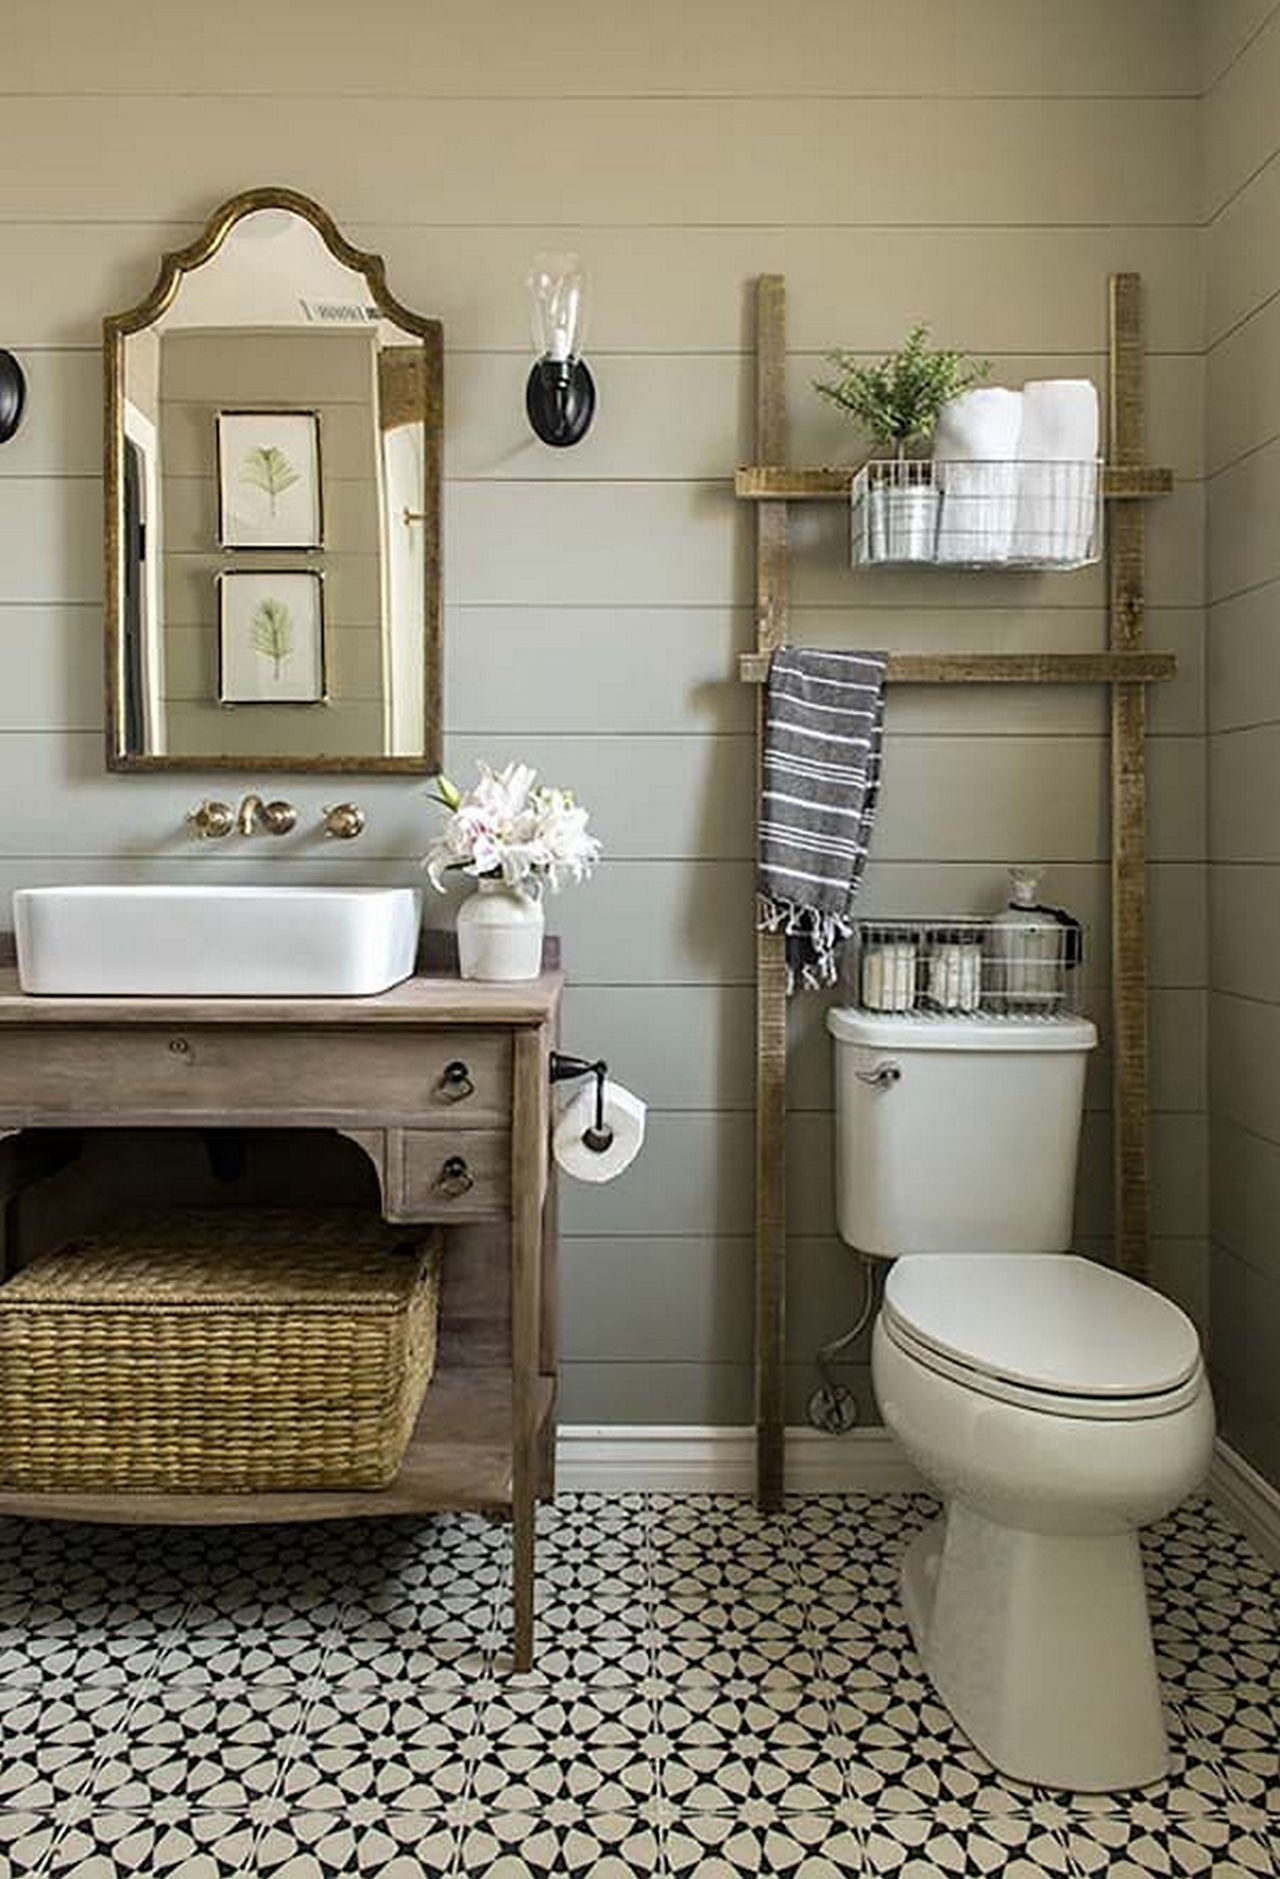 Exciting Bathroom Decor Ideas To Take Yours from Functional To